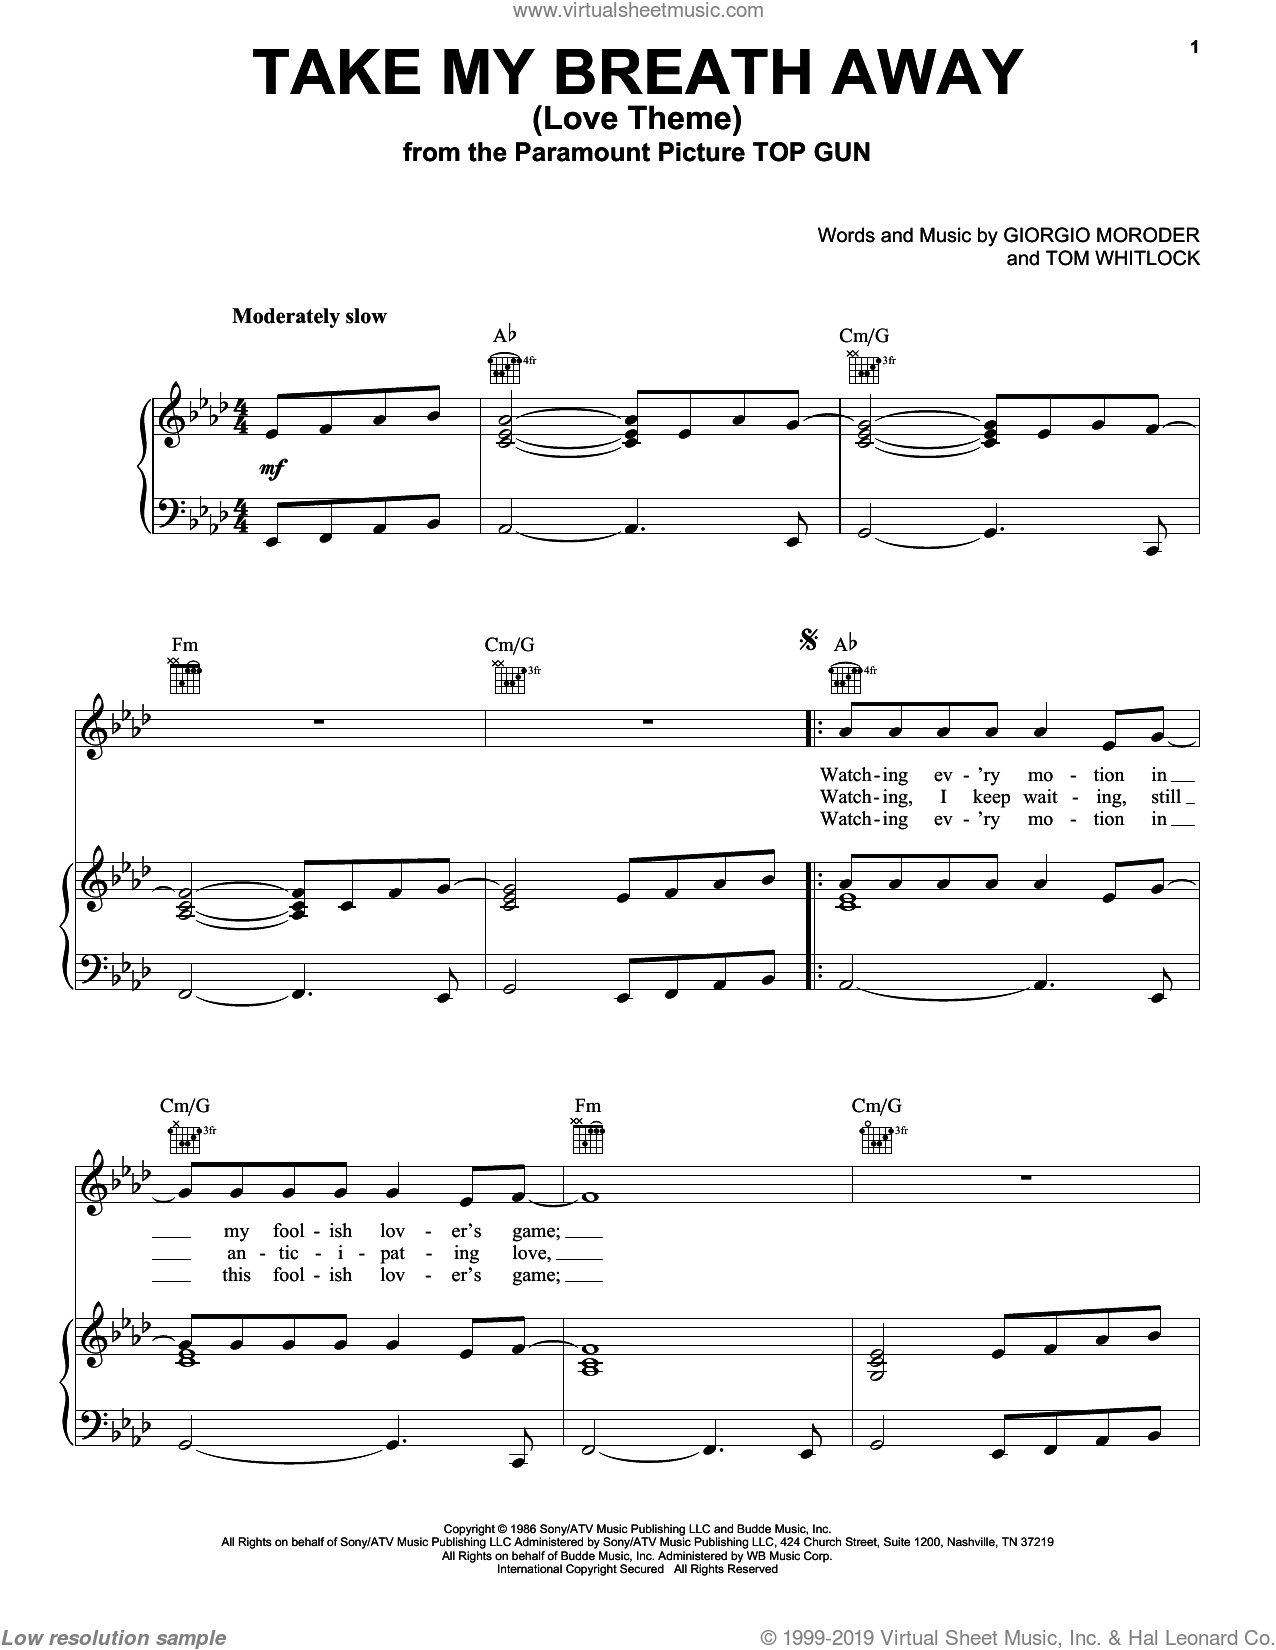 Take My Breath Away (Love Theme) sheet music for voice, piano or guitar by Berlin, Jessica Simpson and Giorgio Moroder. Score Image Preview.